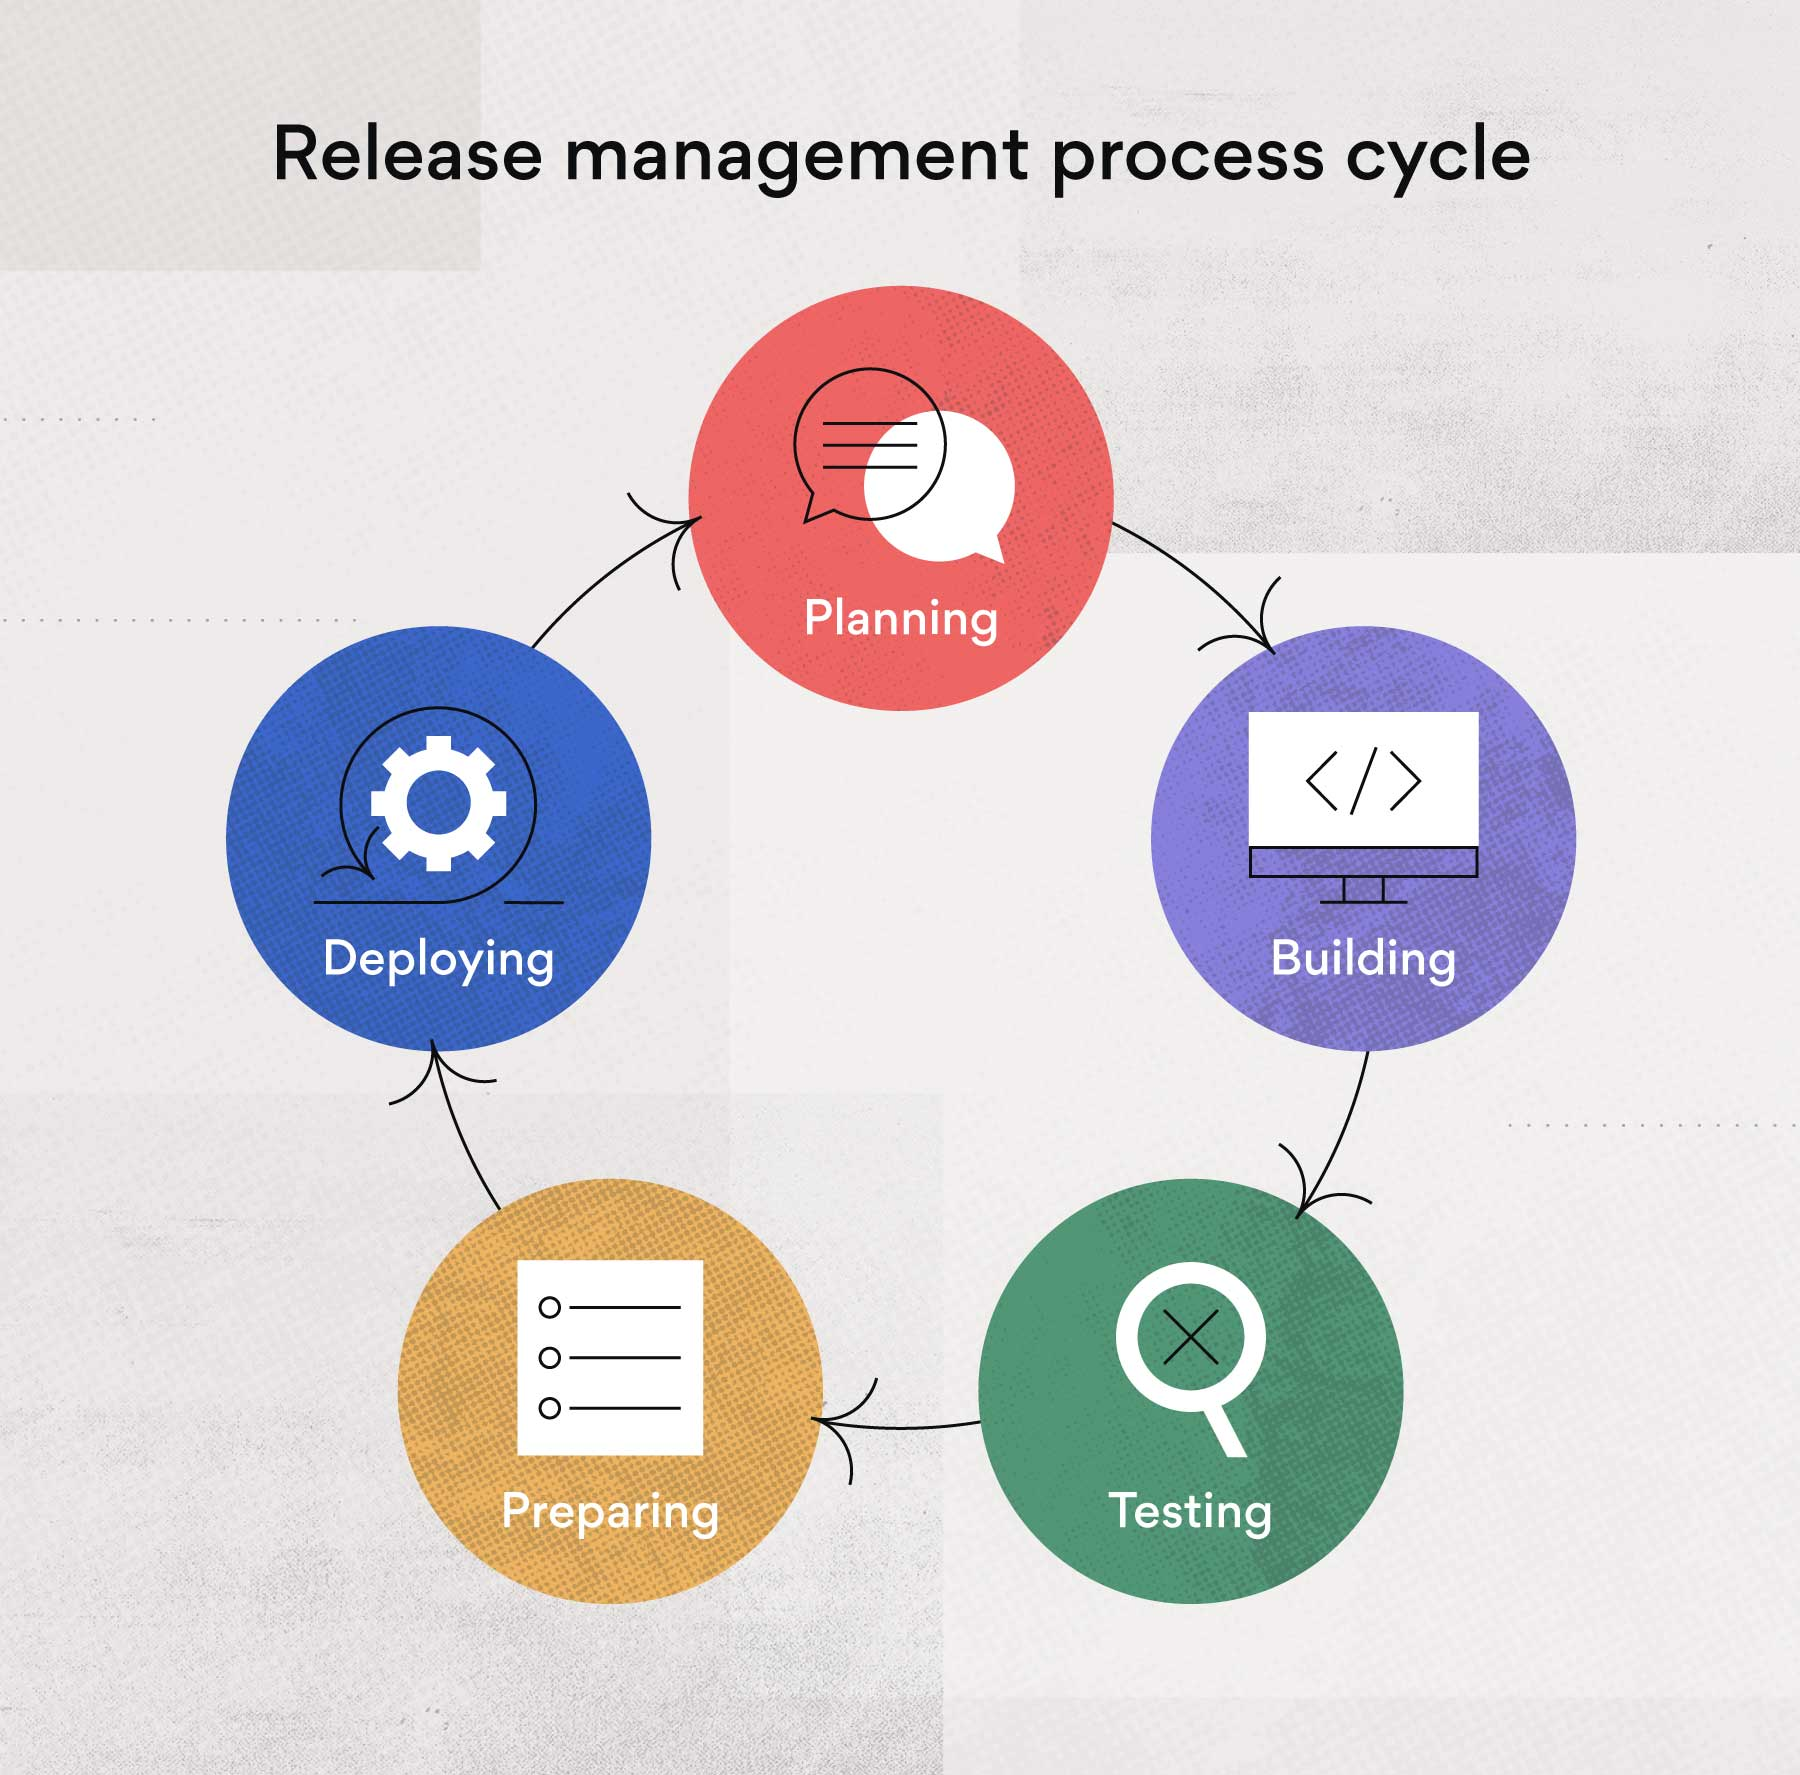 Release management process cycle